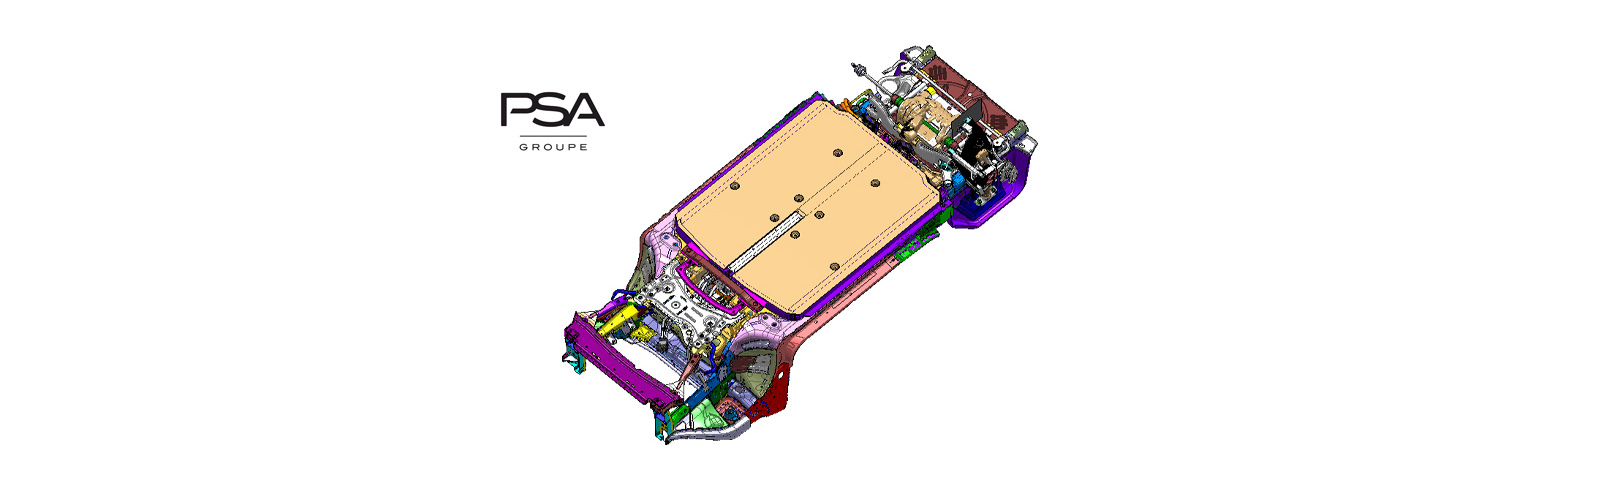 Groupe PSA presented its new eVMP platform for EVs that will debut from 2023 on